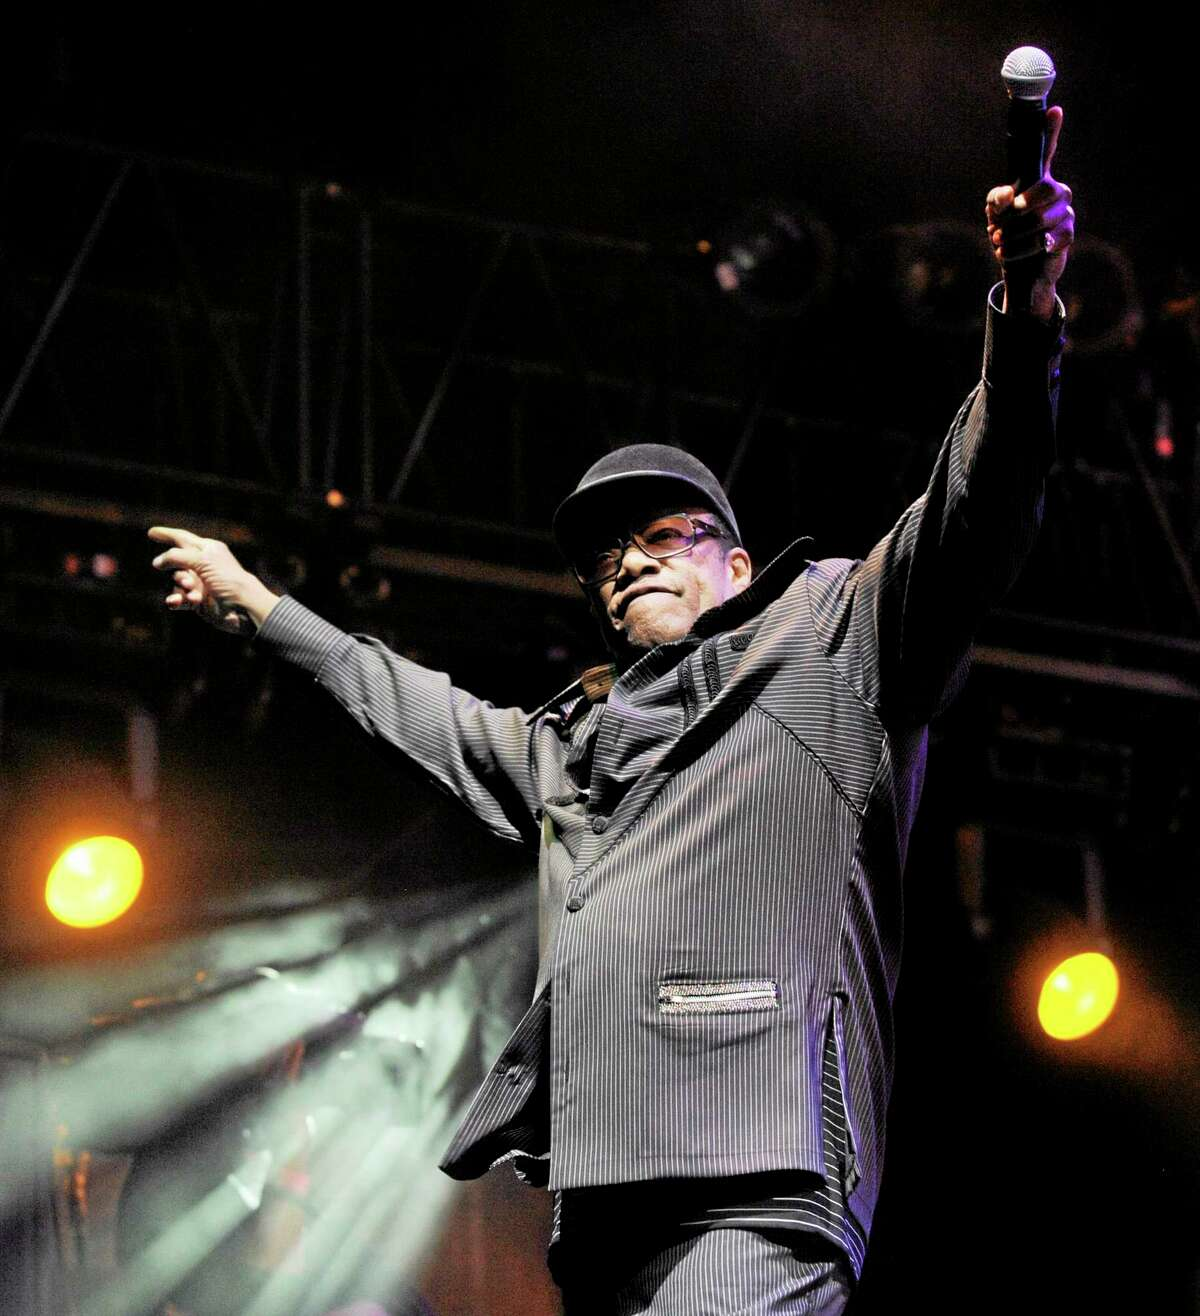 FILE - In this April 18, 2010 file photo, singer Bobby Womack performs with Gorillaz on the final day of the Coachella Valley Music and Arts Festival in Indio, Calif. Womack, 70, a colorful and highly influential R&B singer-songwriter who impacted artists from the Rolling Stones to Damon Albarn, has died. Womack's publicist Sonya Kolowrat confirmed to The Associated Press on Friday, June 27, 2014, that the singer died but had no other details to provide. (AP Photo/Chris Pizzello, file)